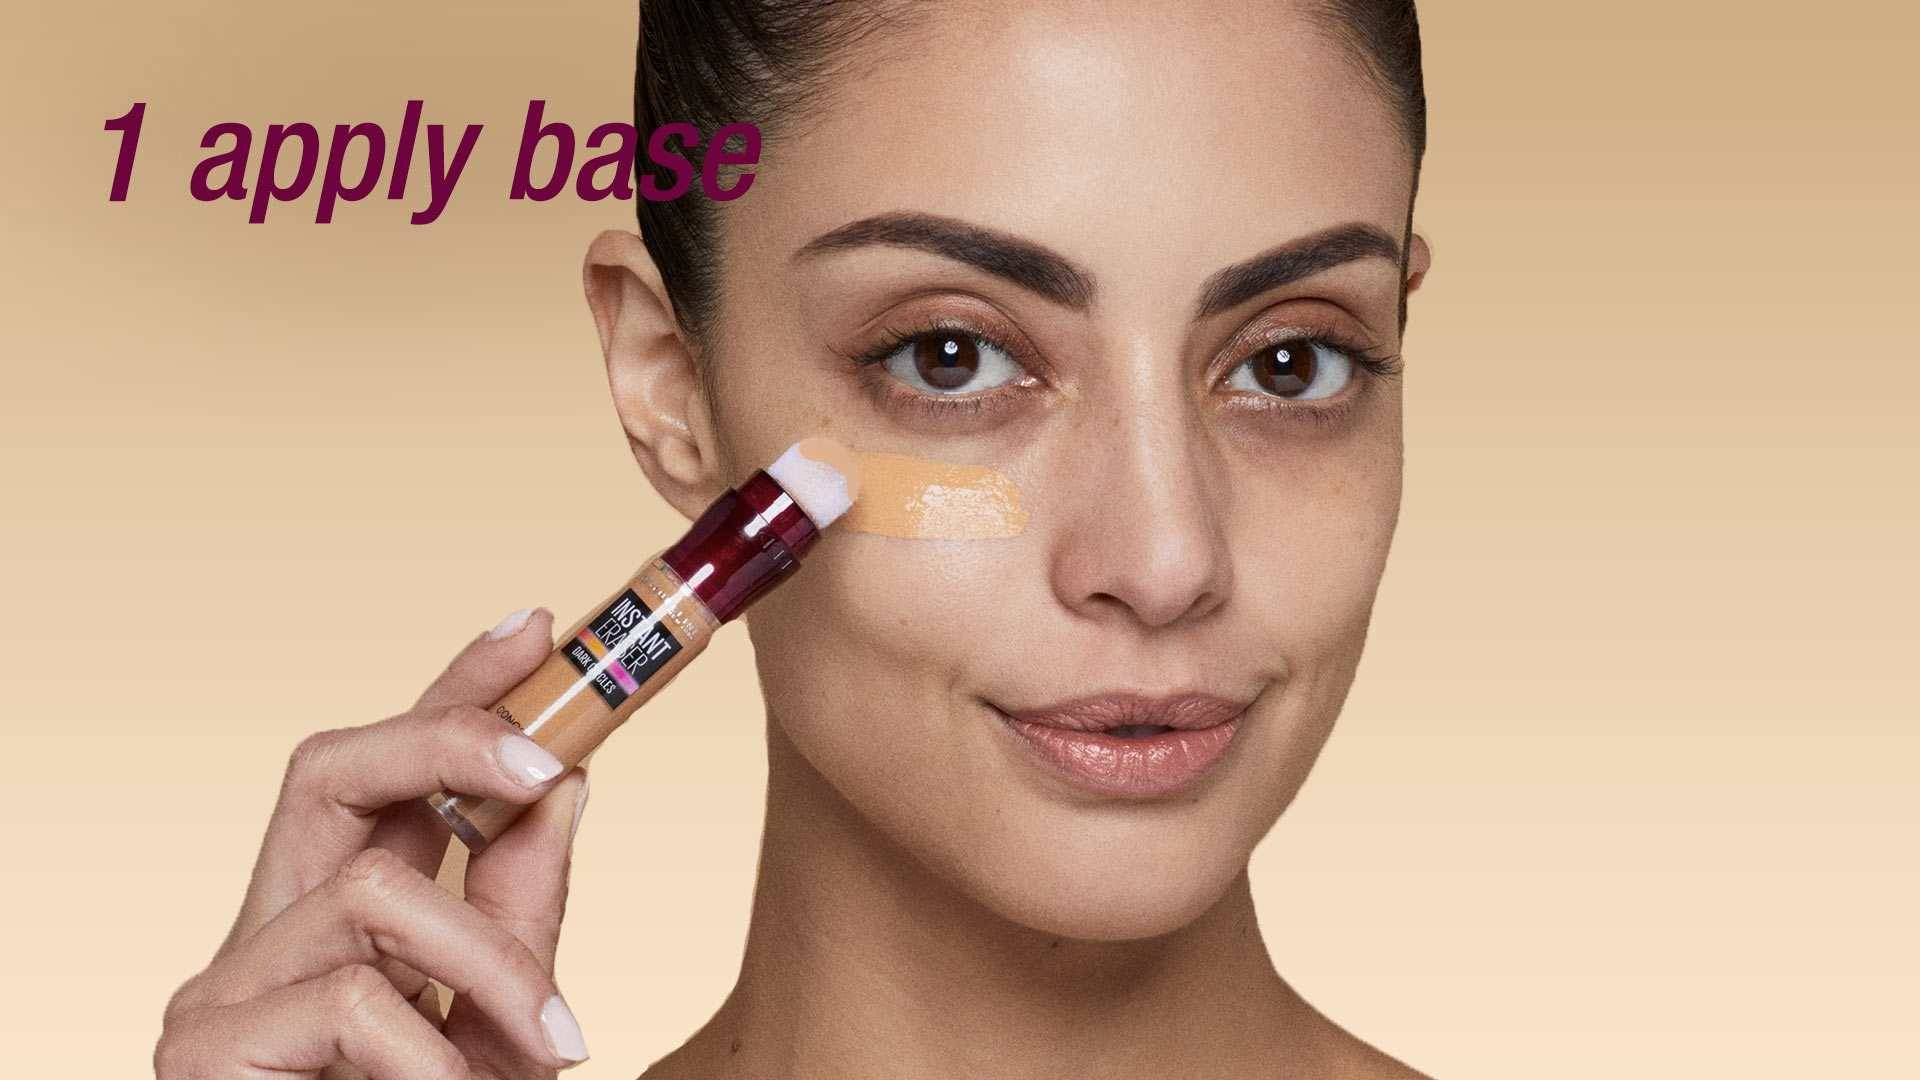 maybelline-iar-concealer-full-face-transformation-video-promoted